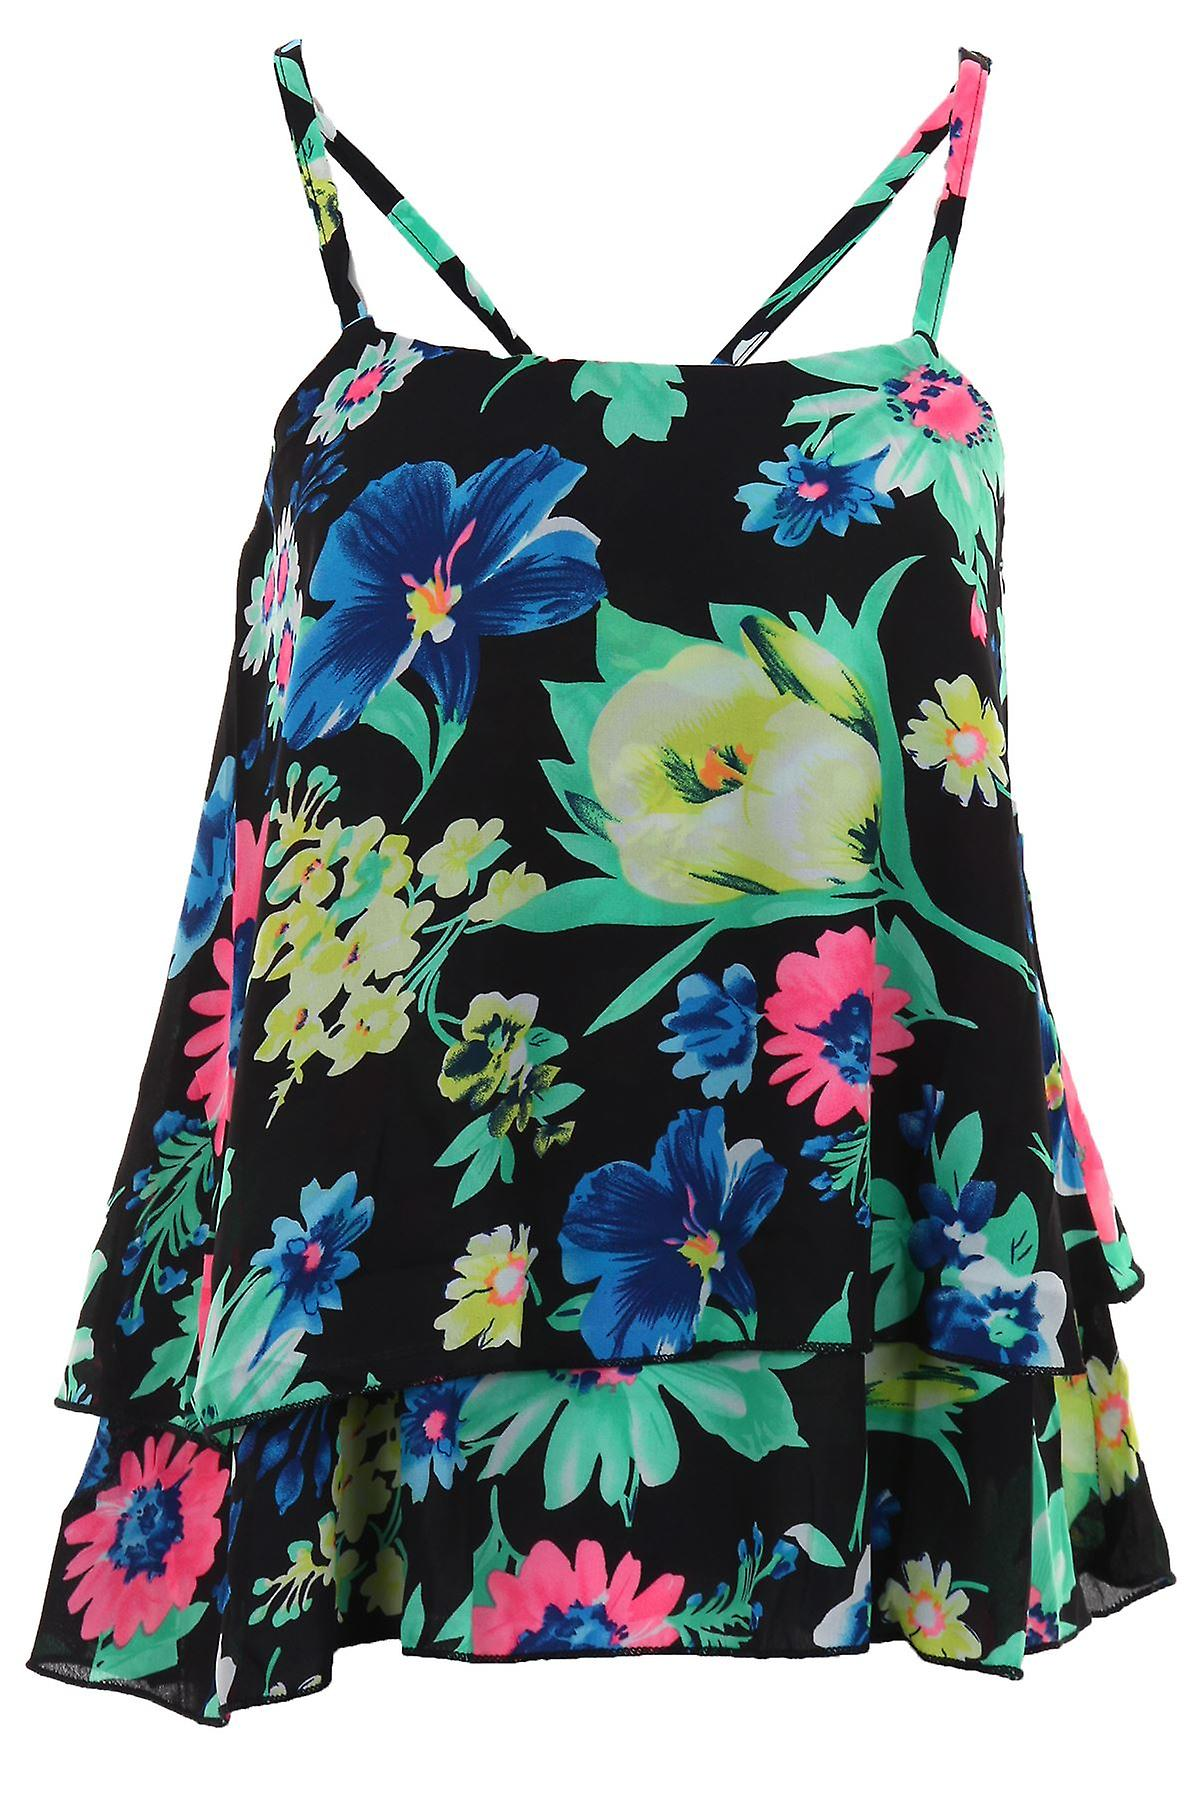 Ladies Frill Chiffon Short Crop Layered Strappy Floral Print Women's Vest Cami Top